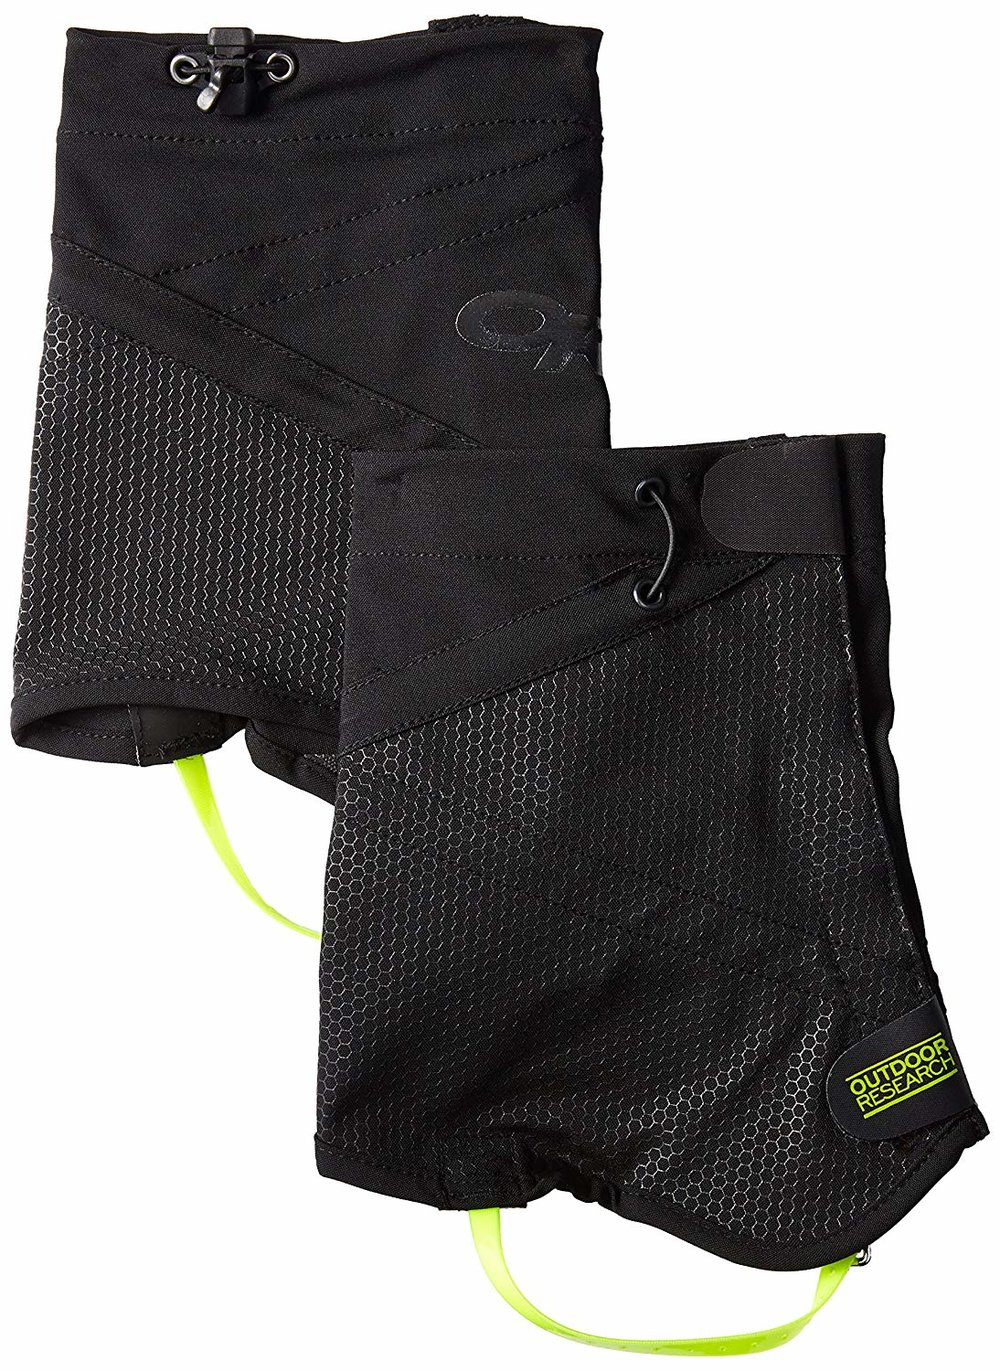 "Gaiters - If you're wearing shorts and low top shoes, you might consider a pair of gaiters. They don't need to be fancy to get the job done, but you'll want to make sure they secure around the base of your shoe so nothing gets in.These have a durable strap that goes under the shoe, others use velcro and a hook to attach. Find what works for you and go with it.Gaiters might not be a ""must have,"" but they sure do make your feel more comfortable."